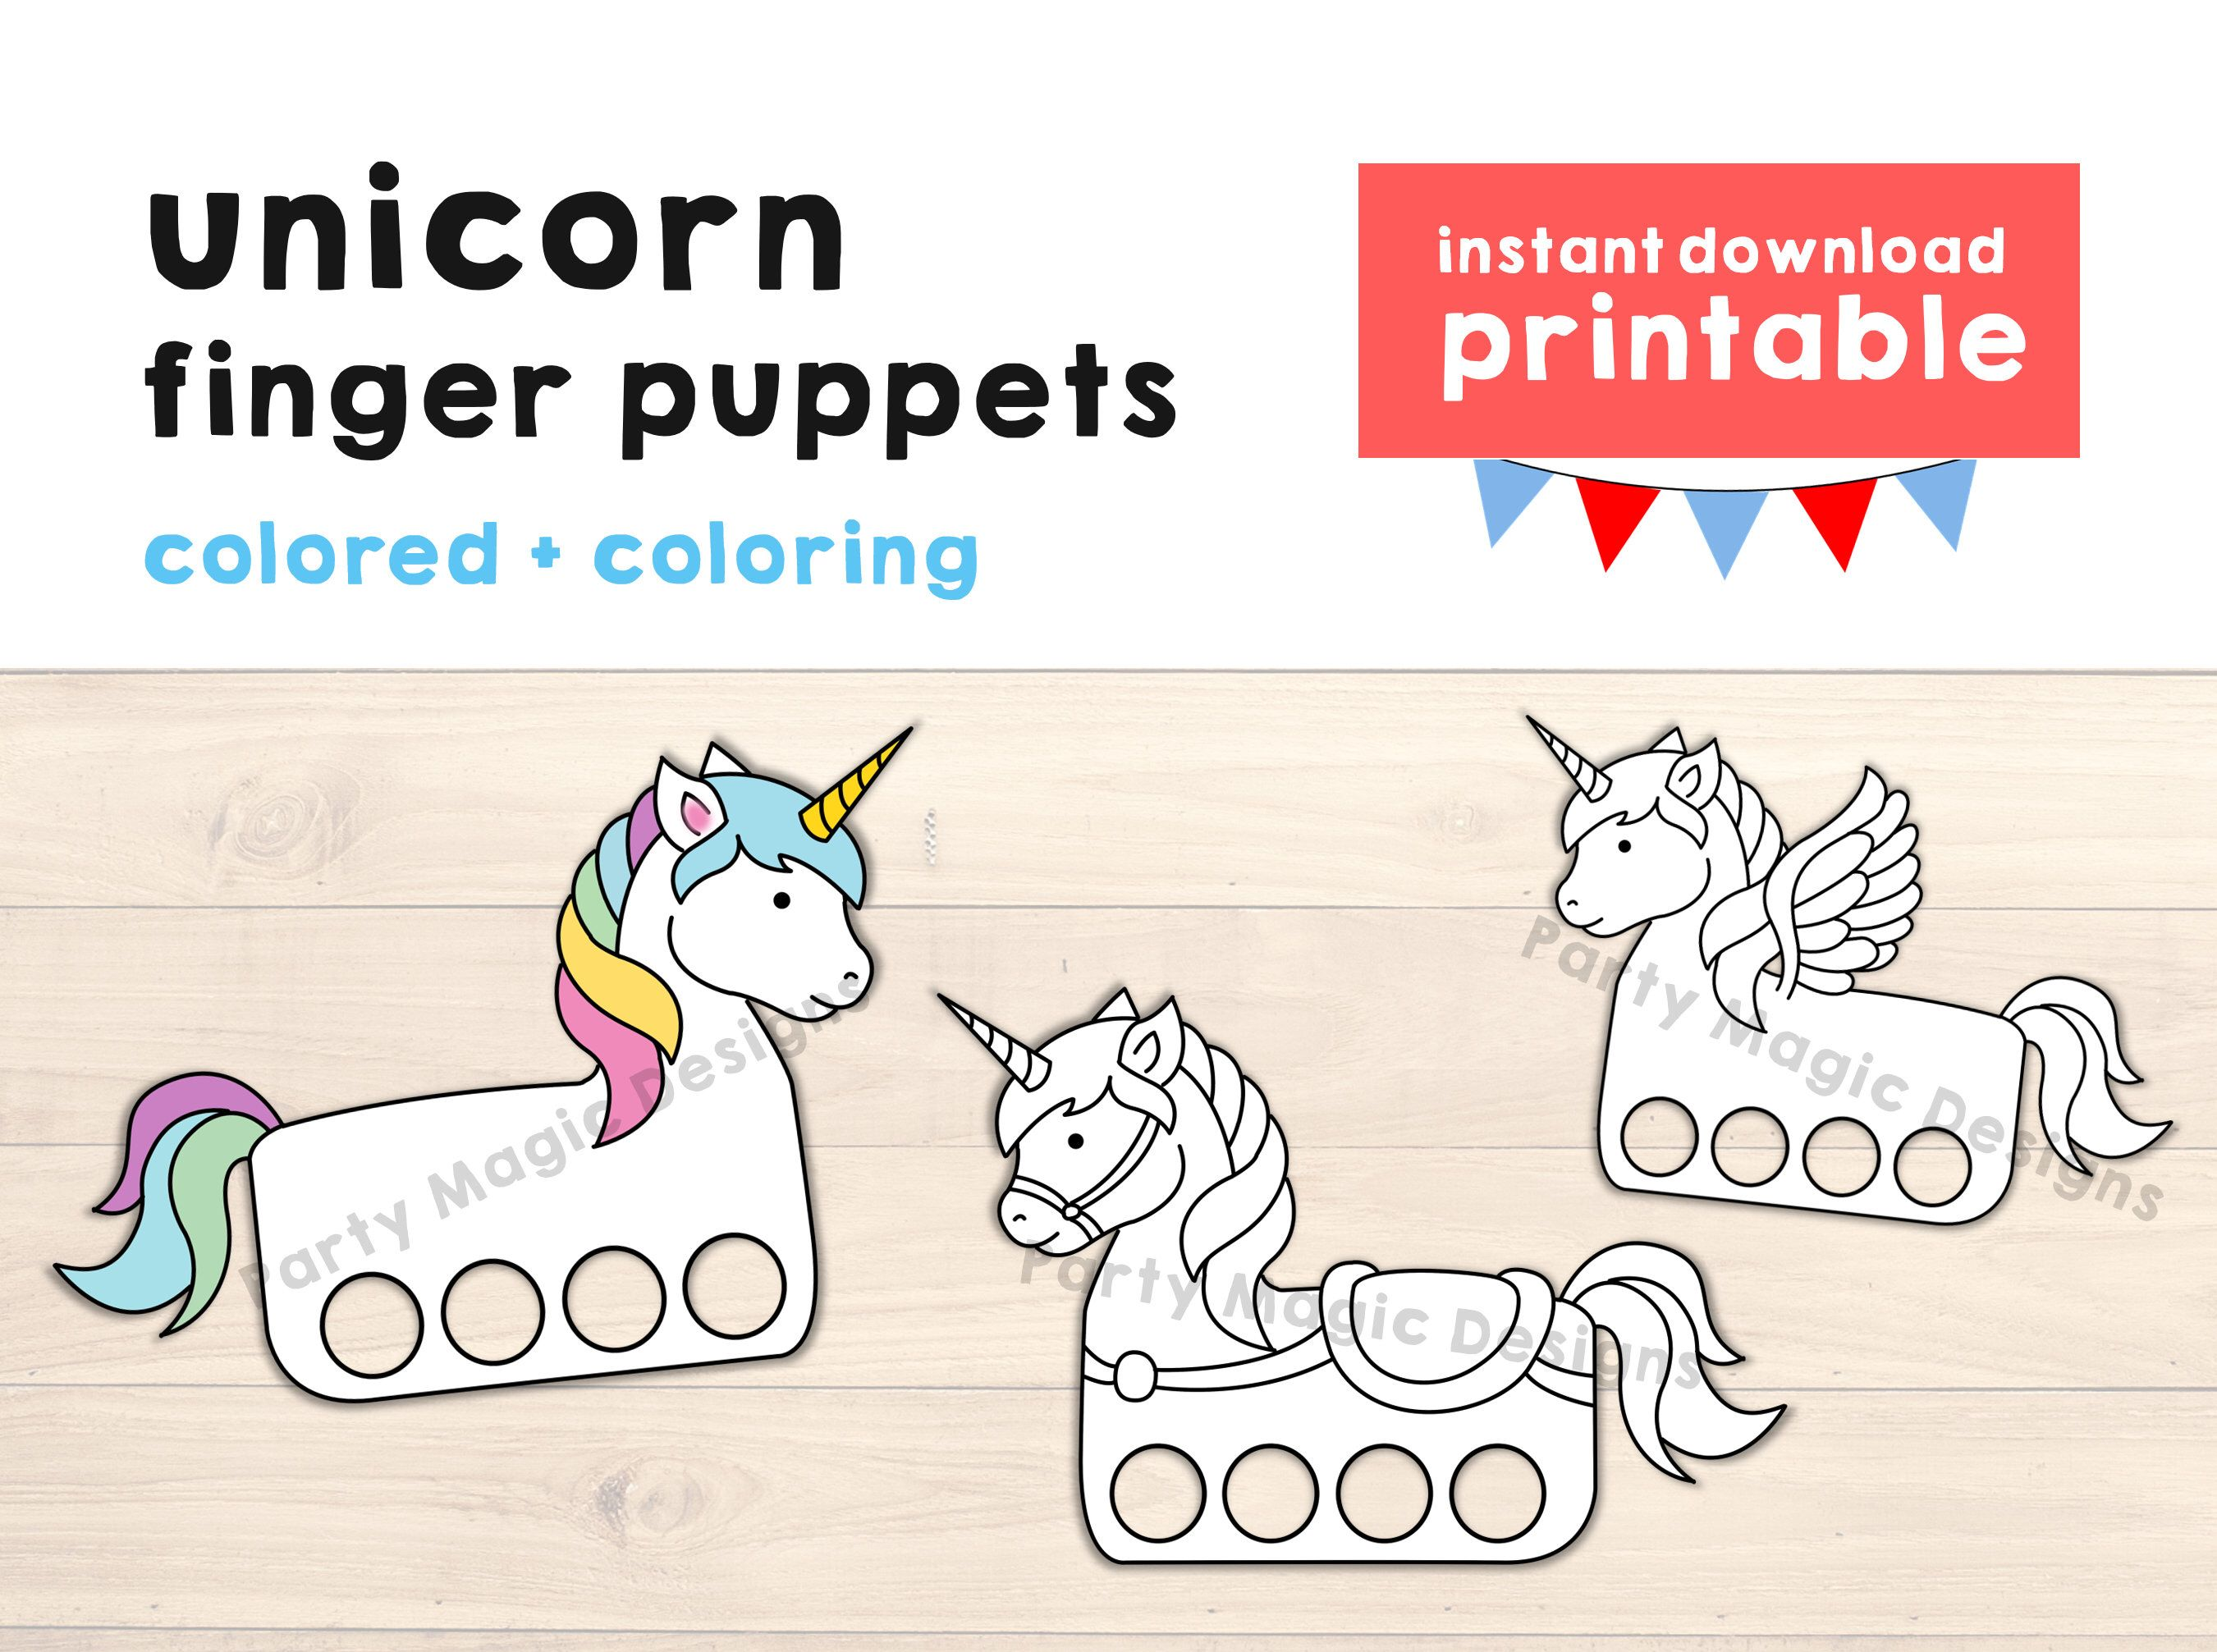 Unicorn Paper Craft Printable Finger Puppet Kids Craft Unicorn Etsy In 2021 Kids Party Crafts Birthday Party Crafts Coloring For Kids